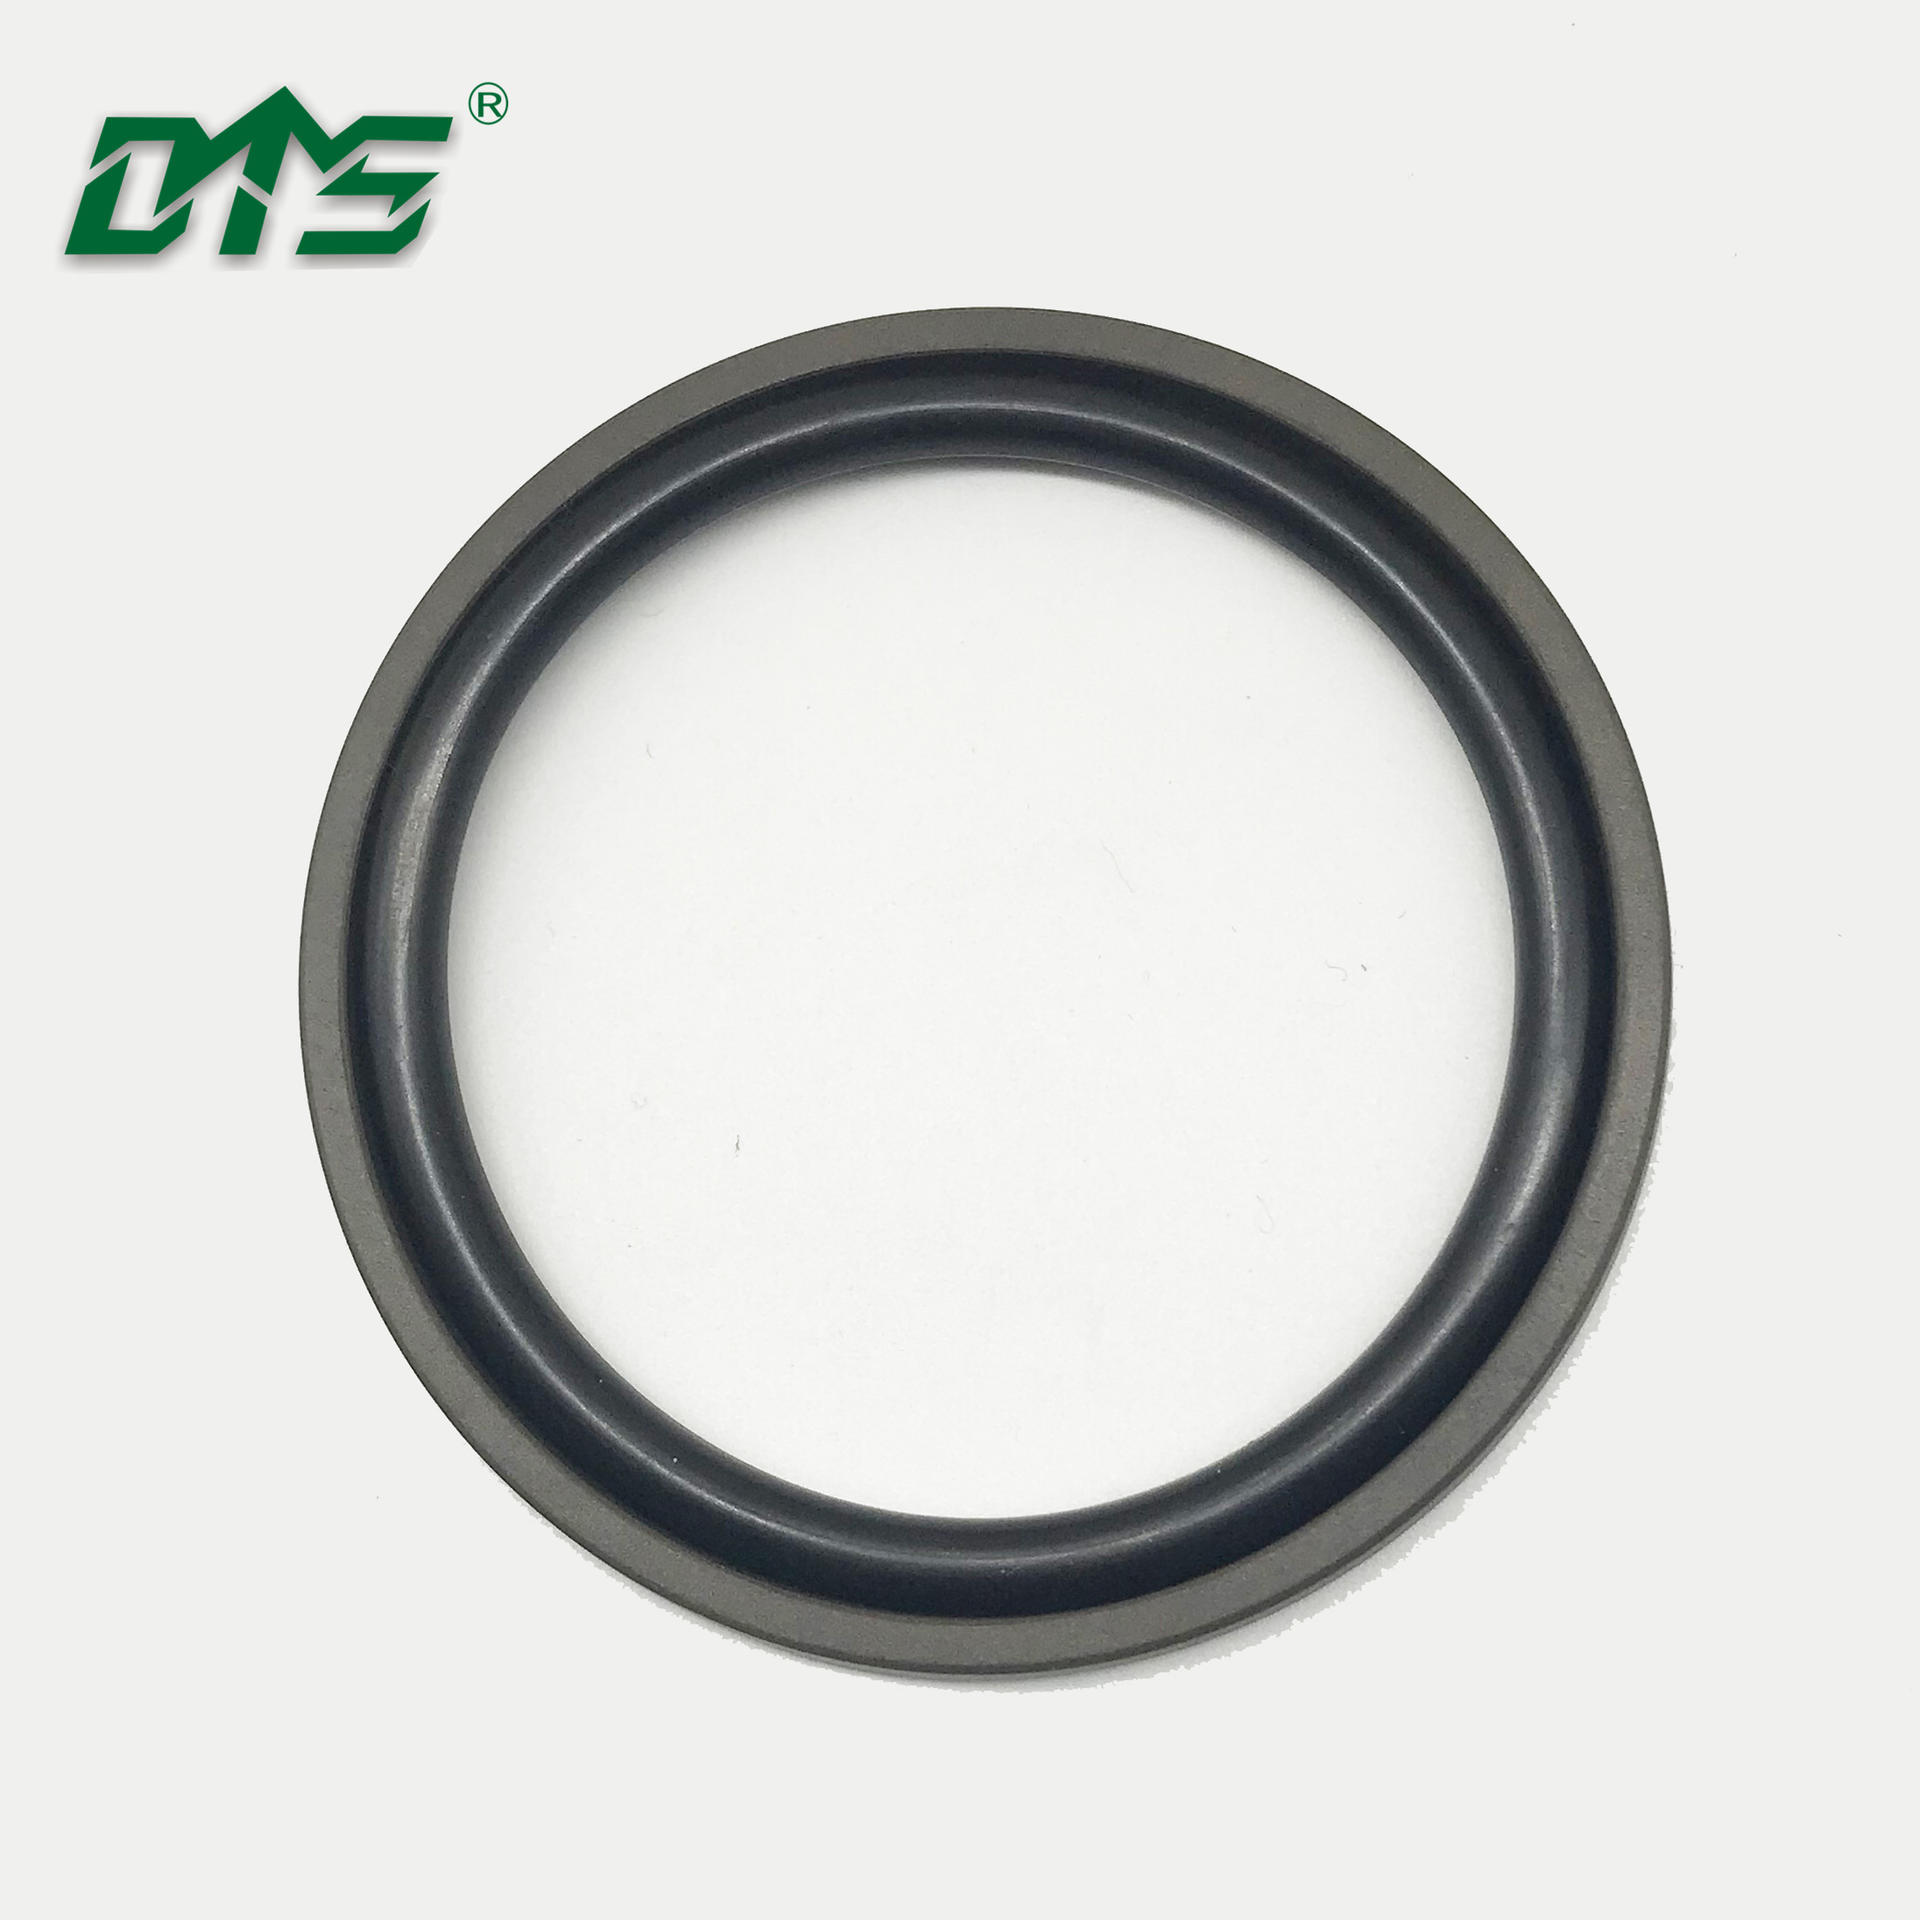 Hydraulic Cylinder Dust Wiper Seals